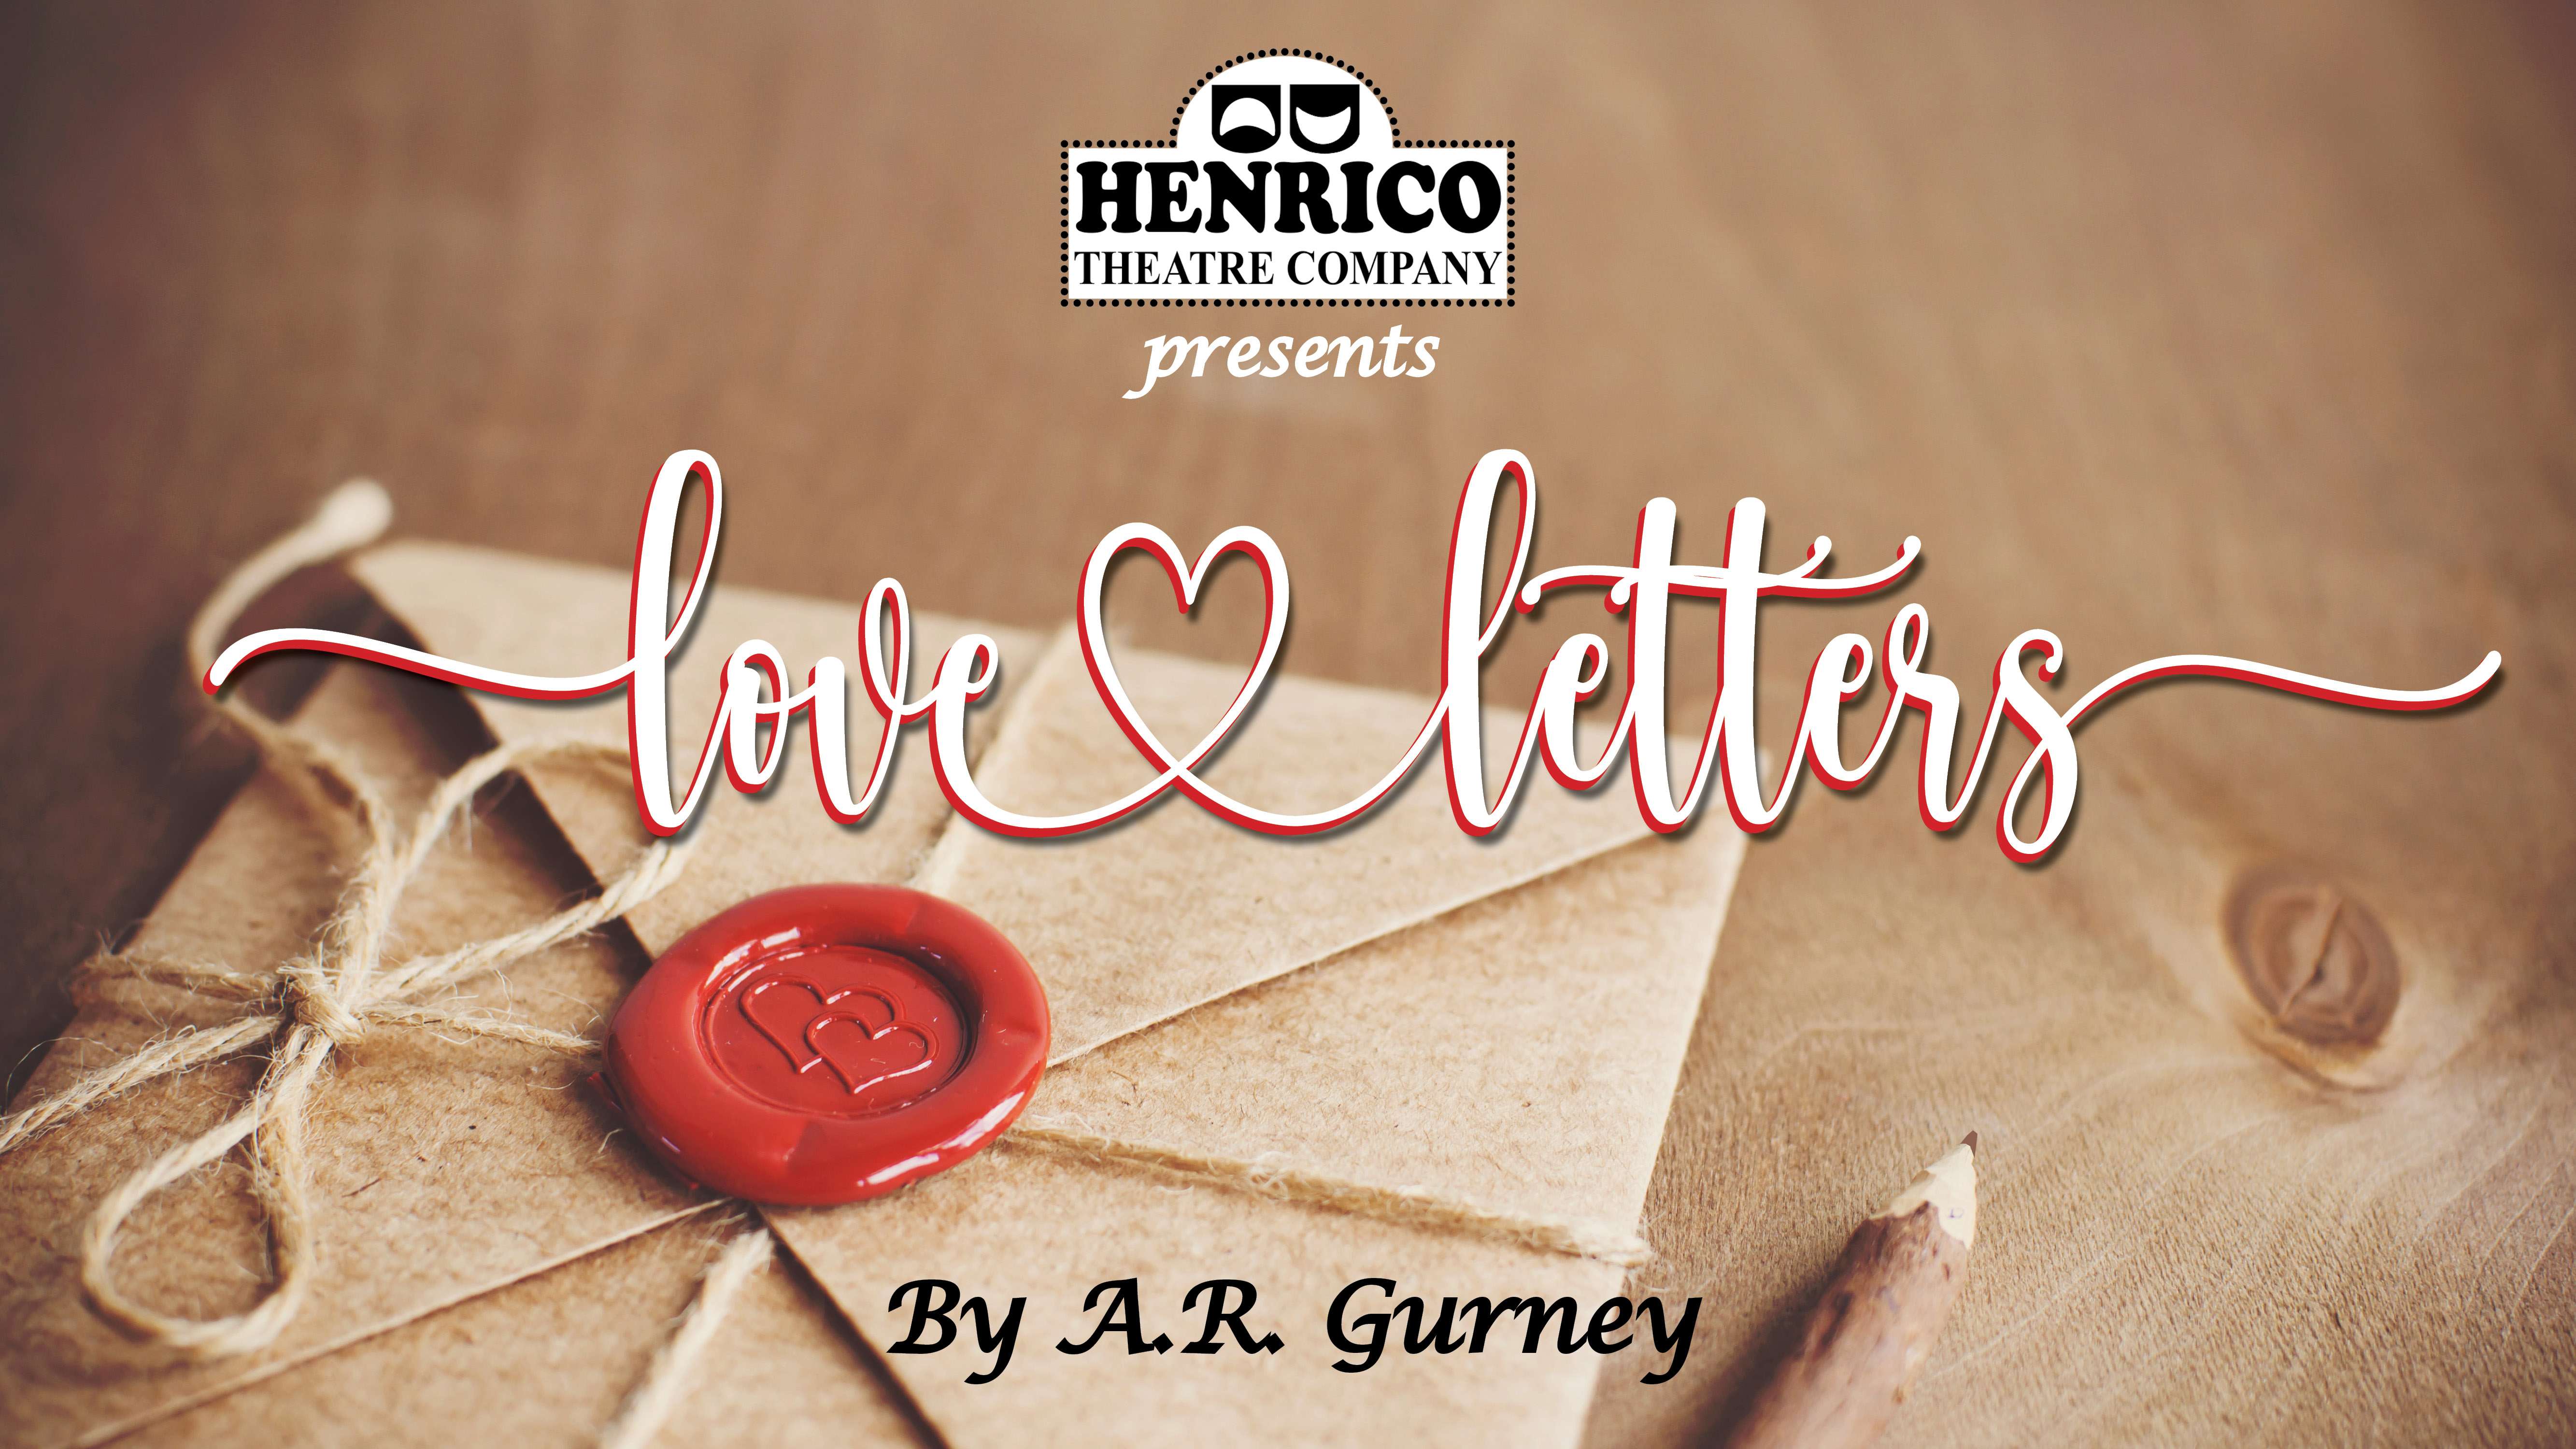 HTC presents LOVE LETTERS by A.R. Gurney